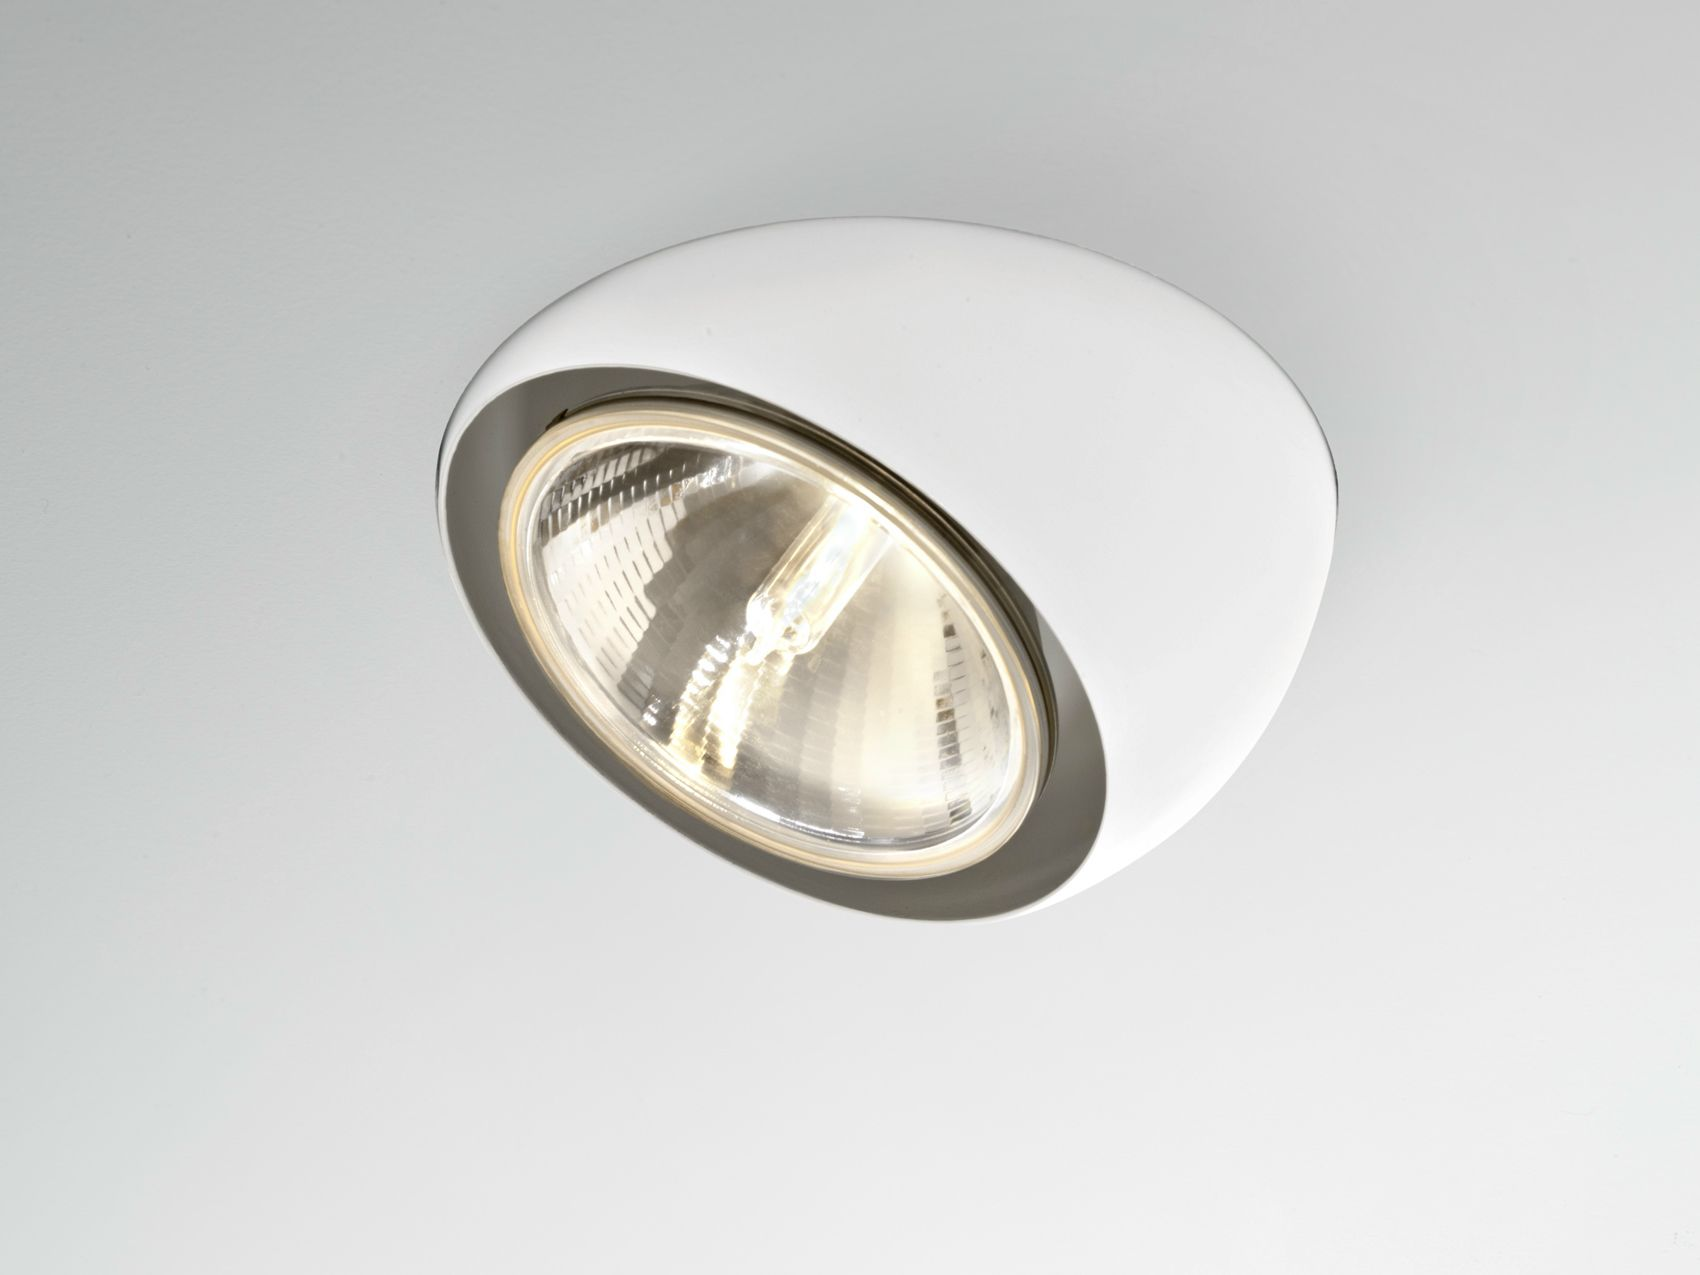 Deckenspots Bad Deckenspots Design Google Suche Lampen Ceiling Spotlights